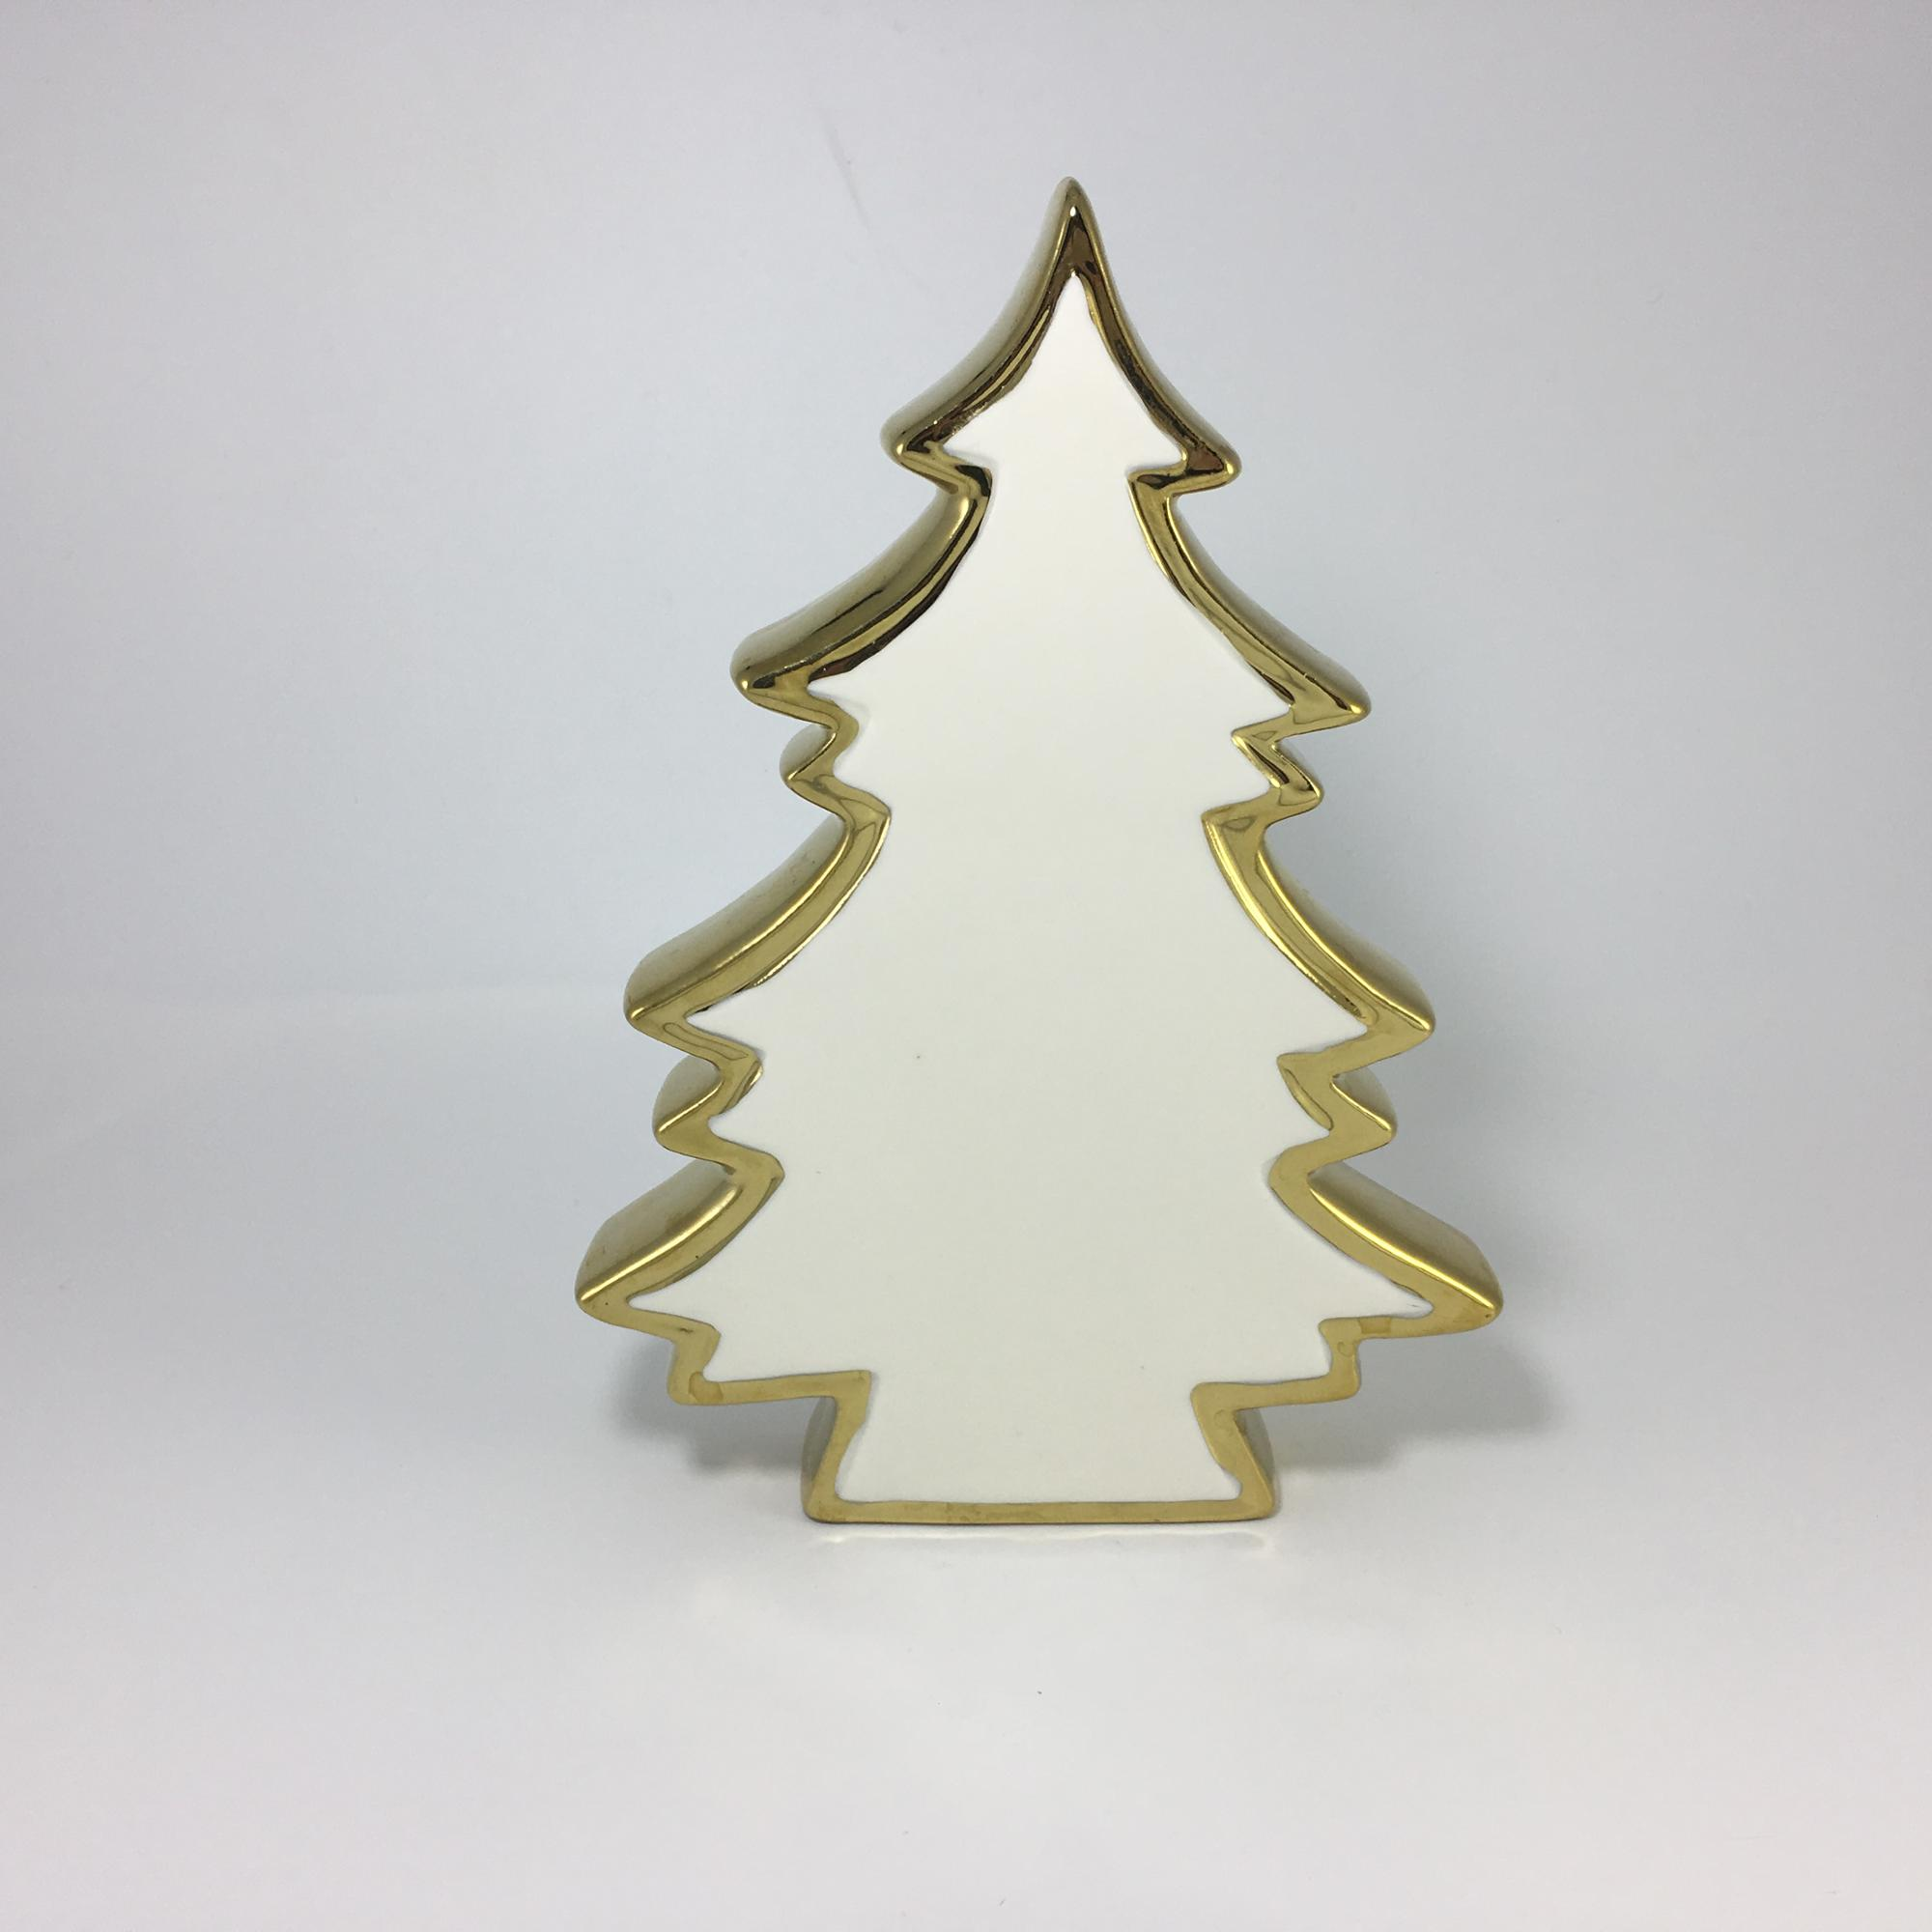 Hanging Ceramic Christmas House candle holder for decoration